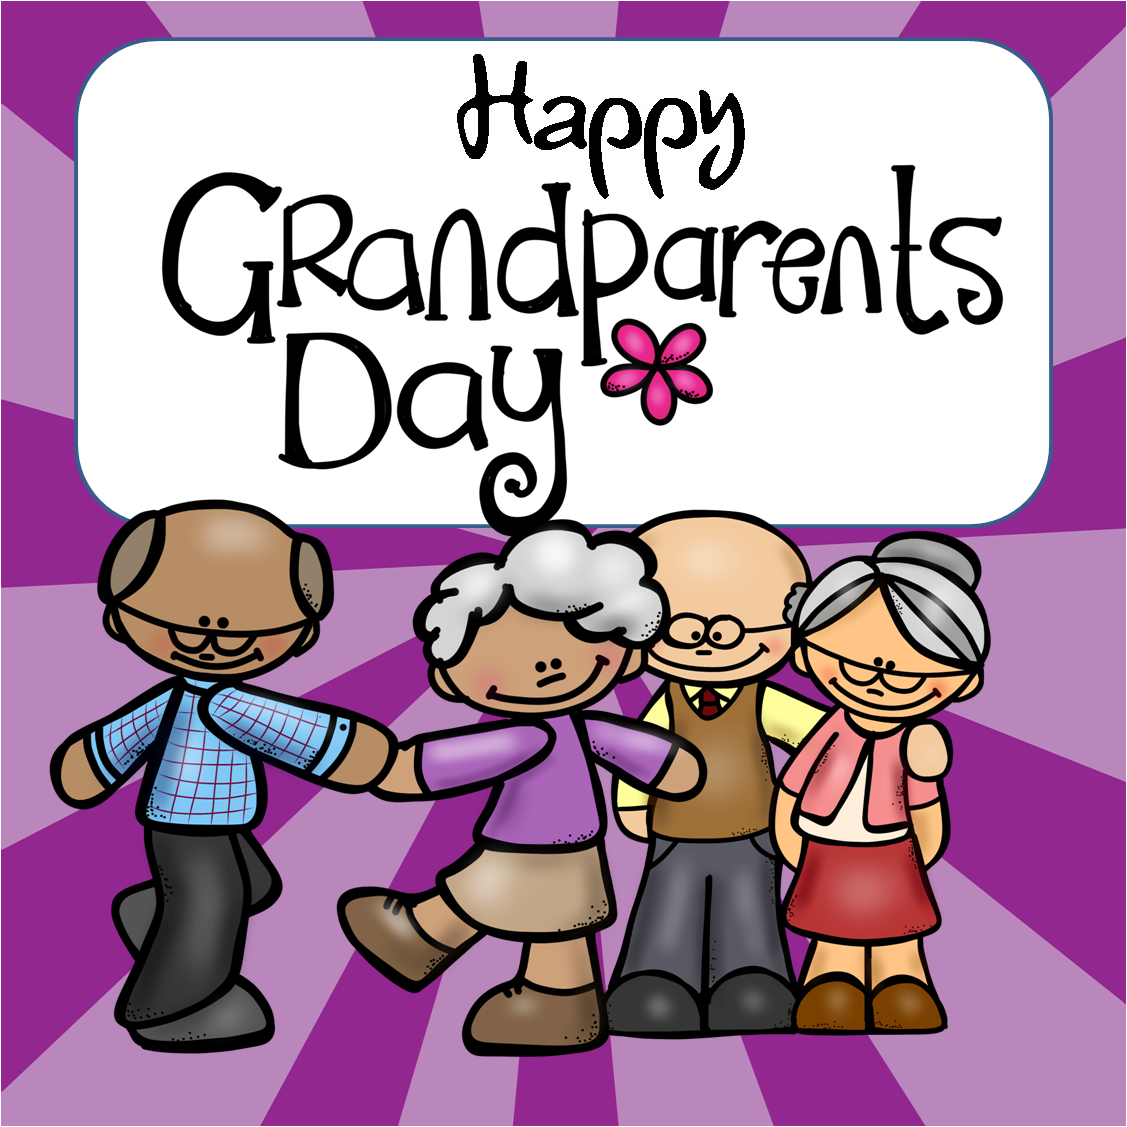 http://www.teacherspayteachers.com/Product/FREEBIE-Happy-Grandparents-Day-Coloring-Activity-1435163